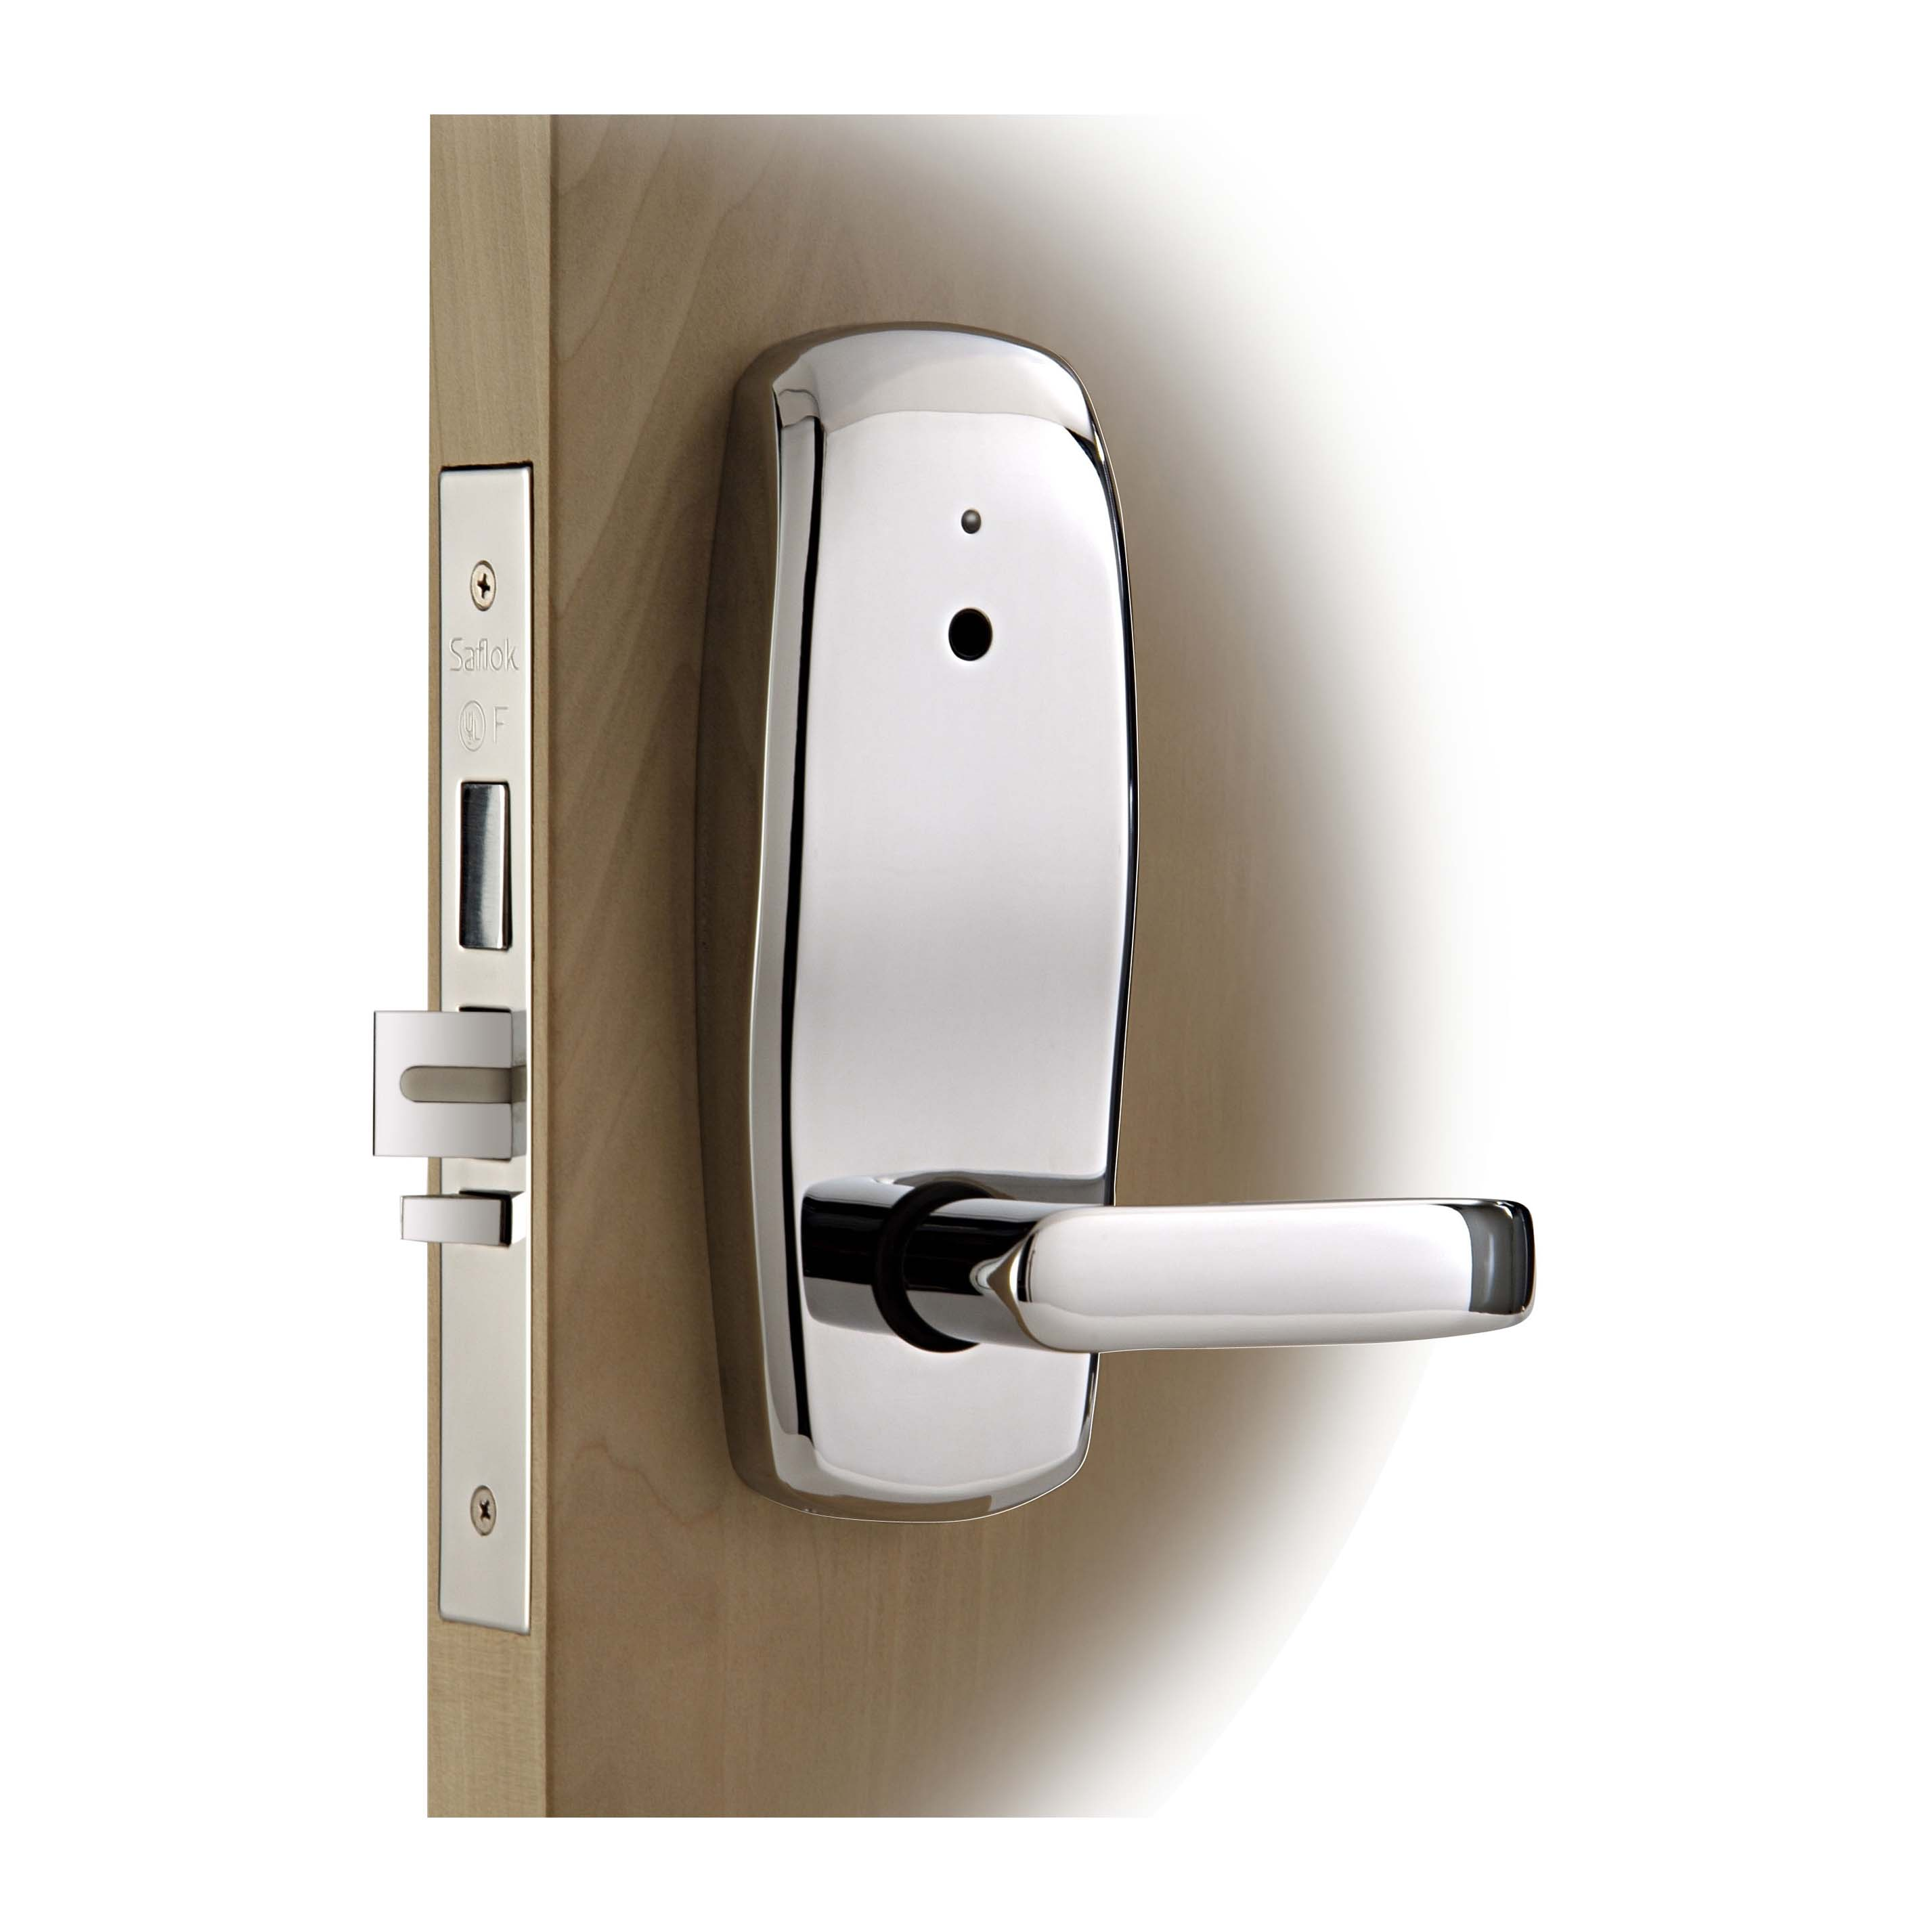 Insync - Multihousing Access Control Systems - Products | dormakaba